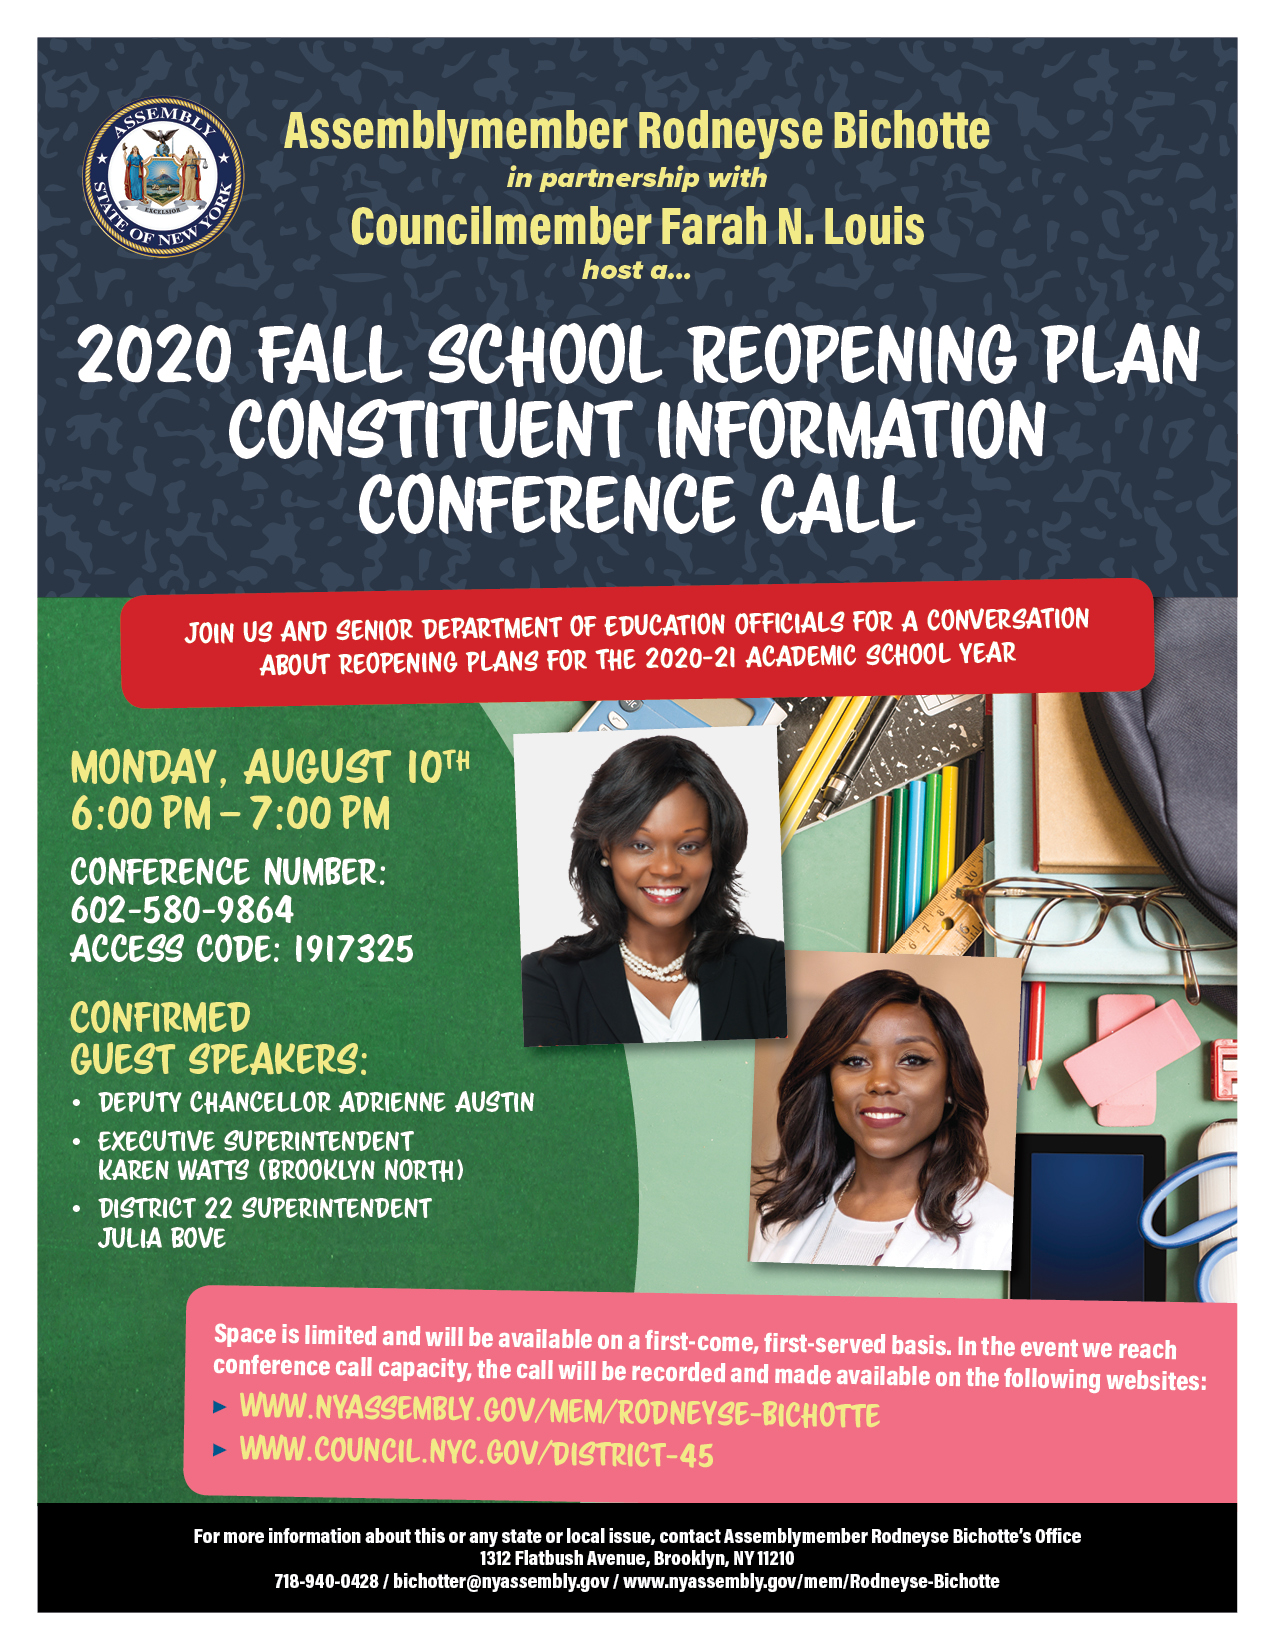 2020 Fall School Reopening Plan Constituent Information Conference Call